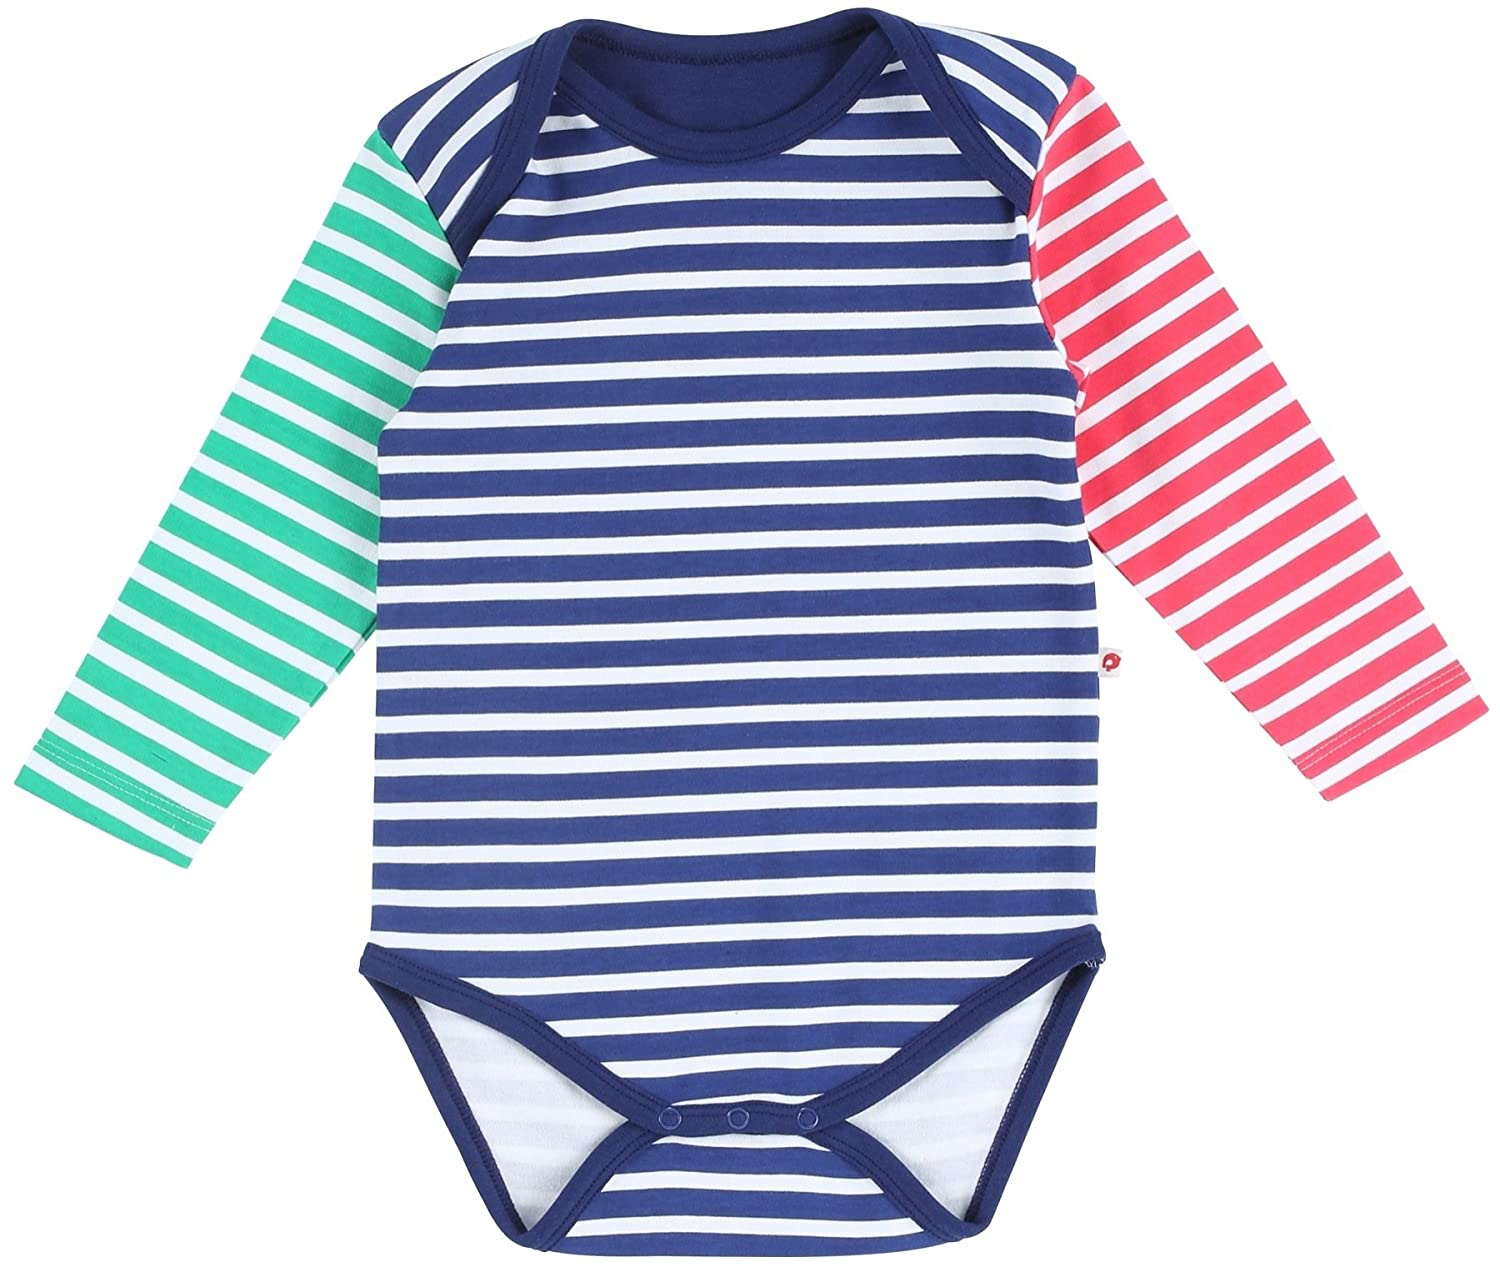 Piccalilly in cotone organico blu bimbo Primary Stripe Baby Body